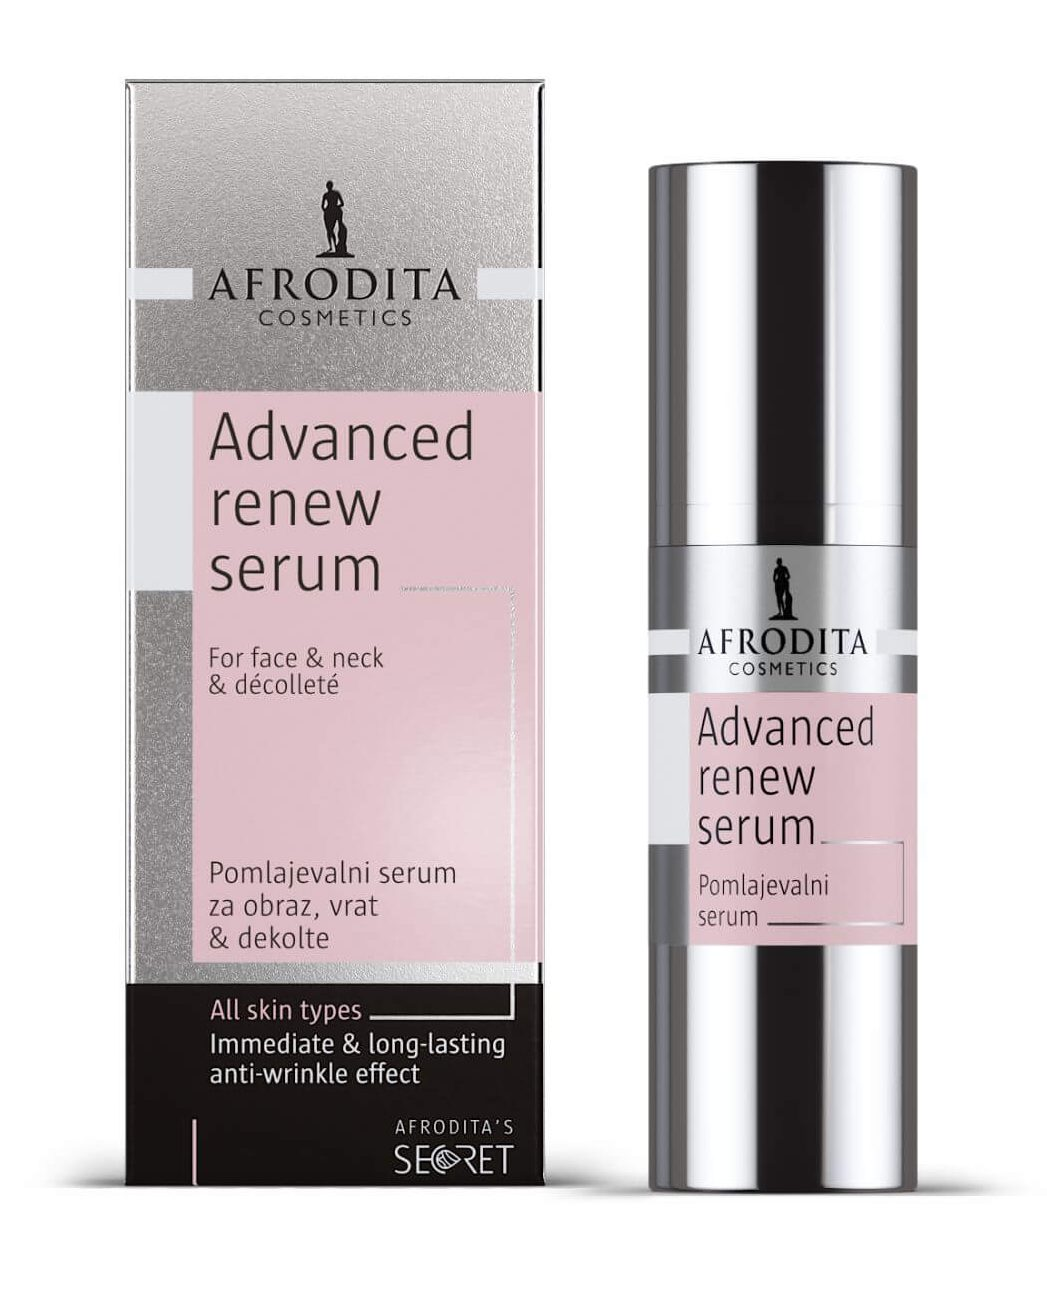 Afrodita's Secret - Advanced Renew Serum WEB 2